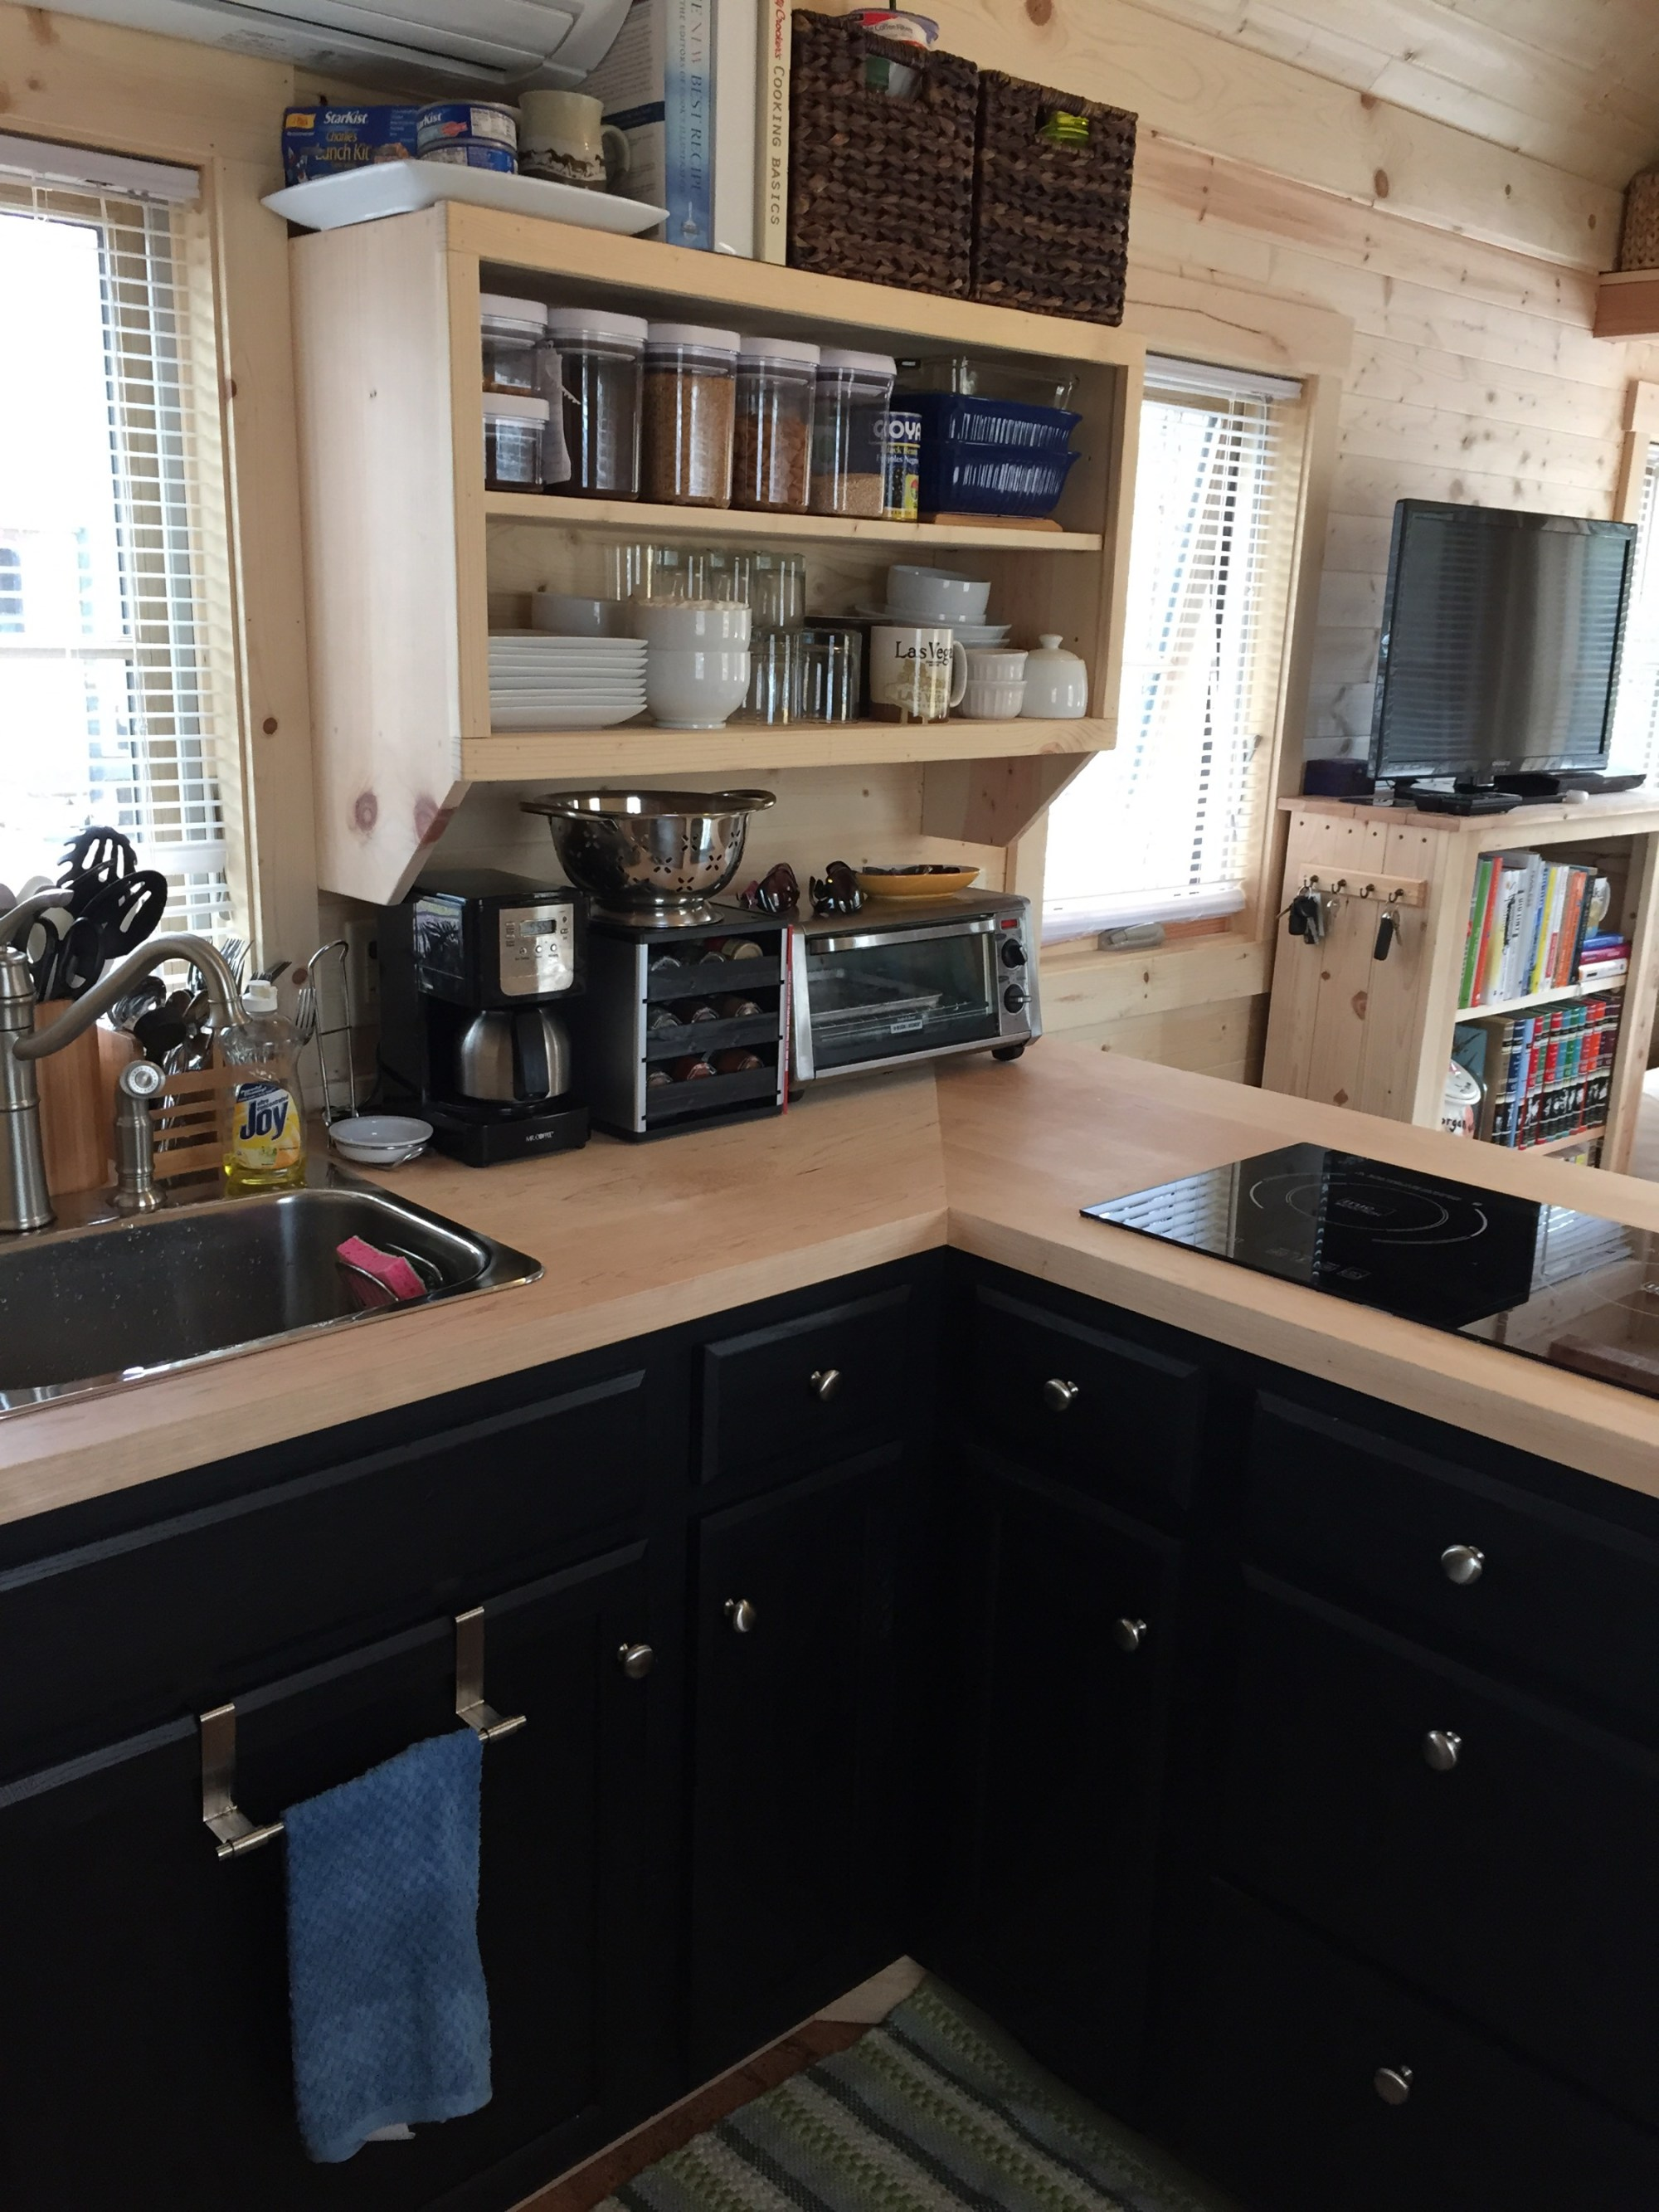 hight resolution of  and a few of my most useful kitchen gadgets i also wanted it to feel roomy no galley kitchens for this kid here is the kitchen i ended up with